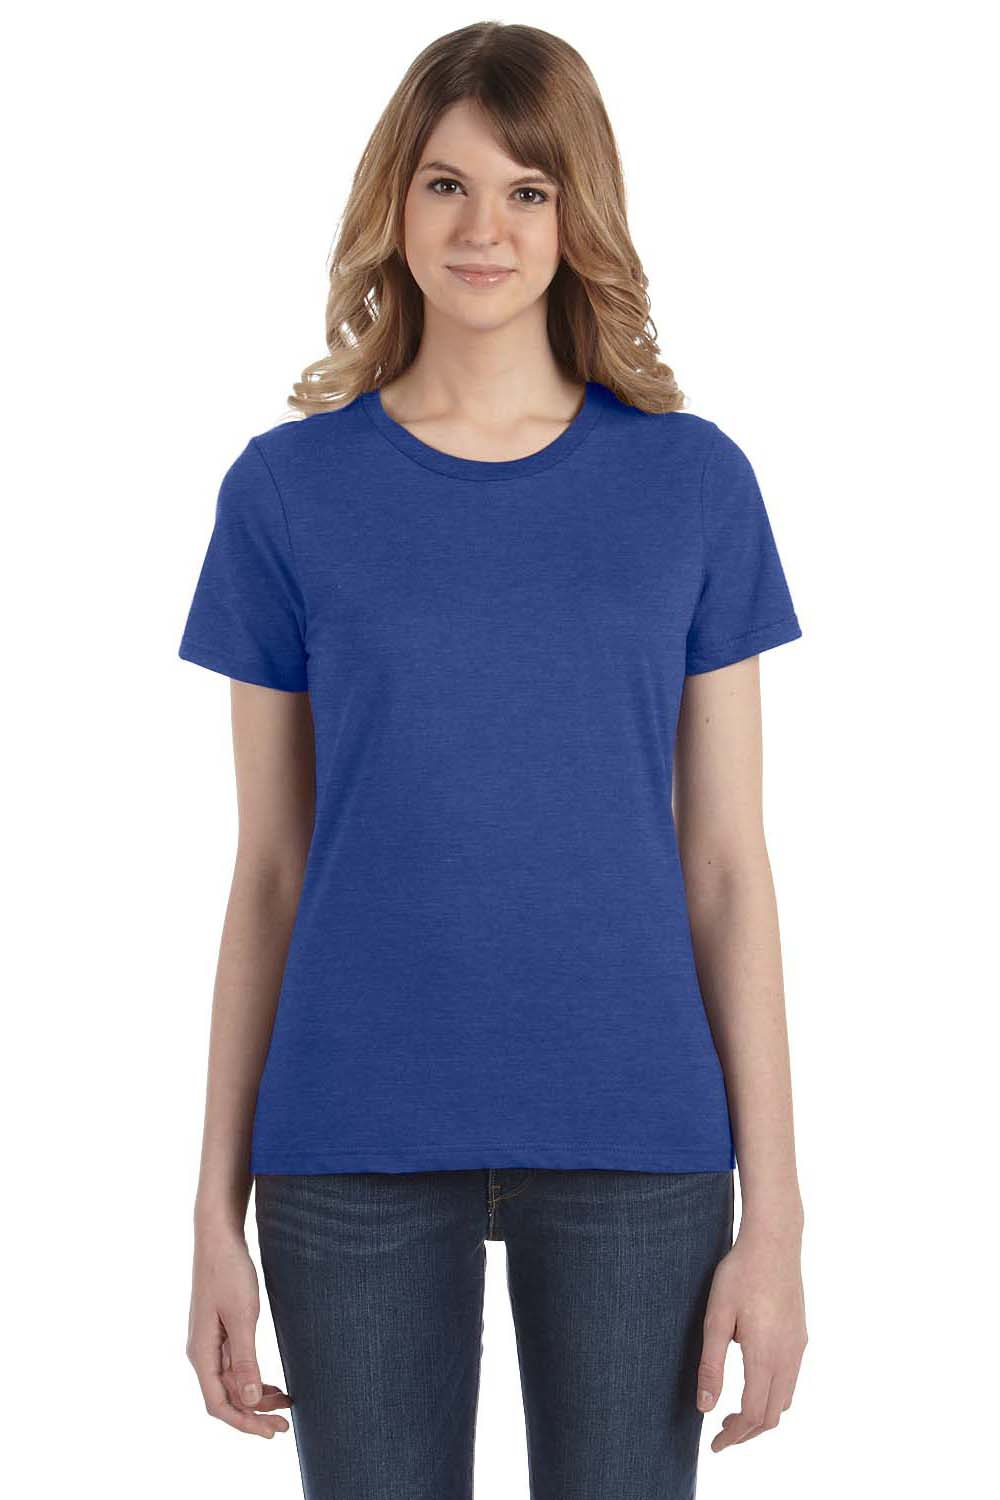 Anvil 880 Womens Short Sleeve Crewneck T-Shirt Heather Blue Front